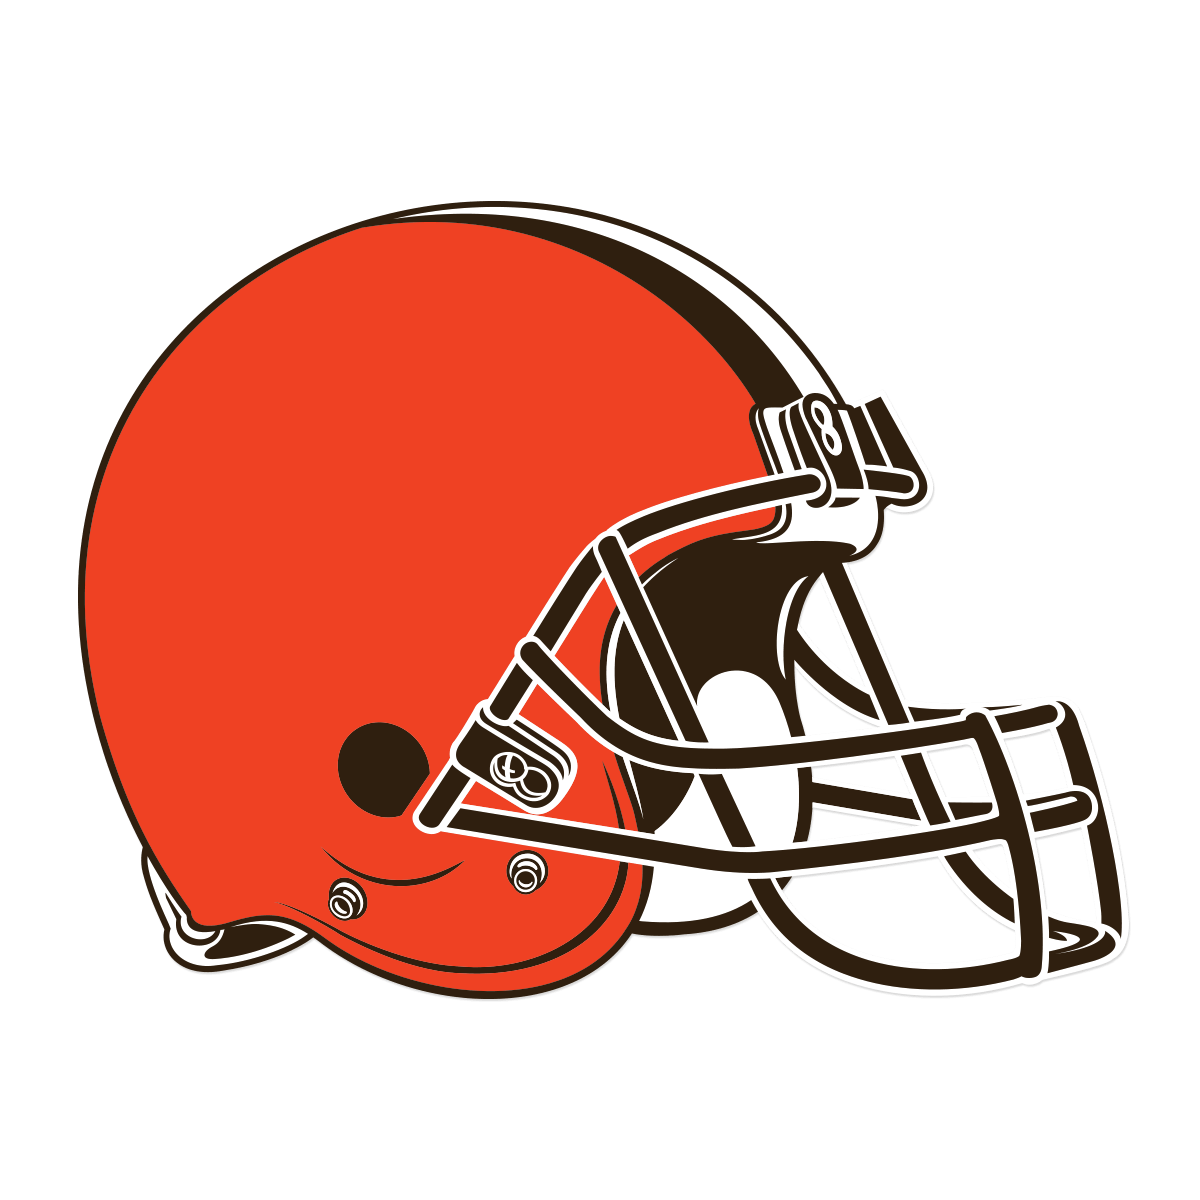 Cleveland Browns Backgrounds, Compatible - PC, Mobile, Gadgets| 1200x1200 px